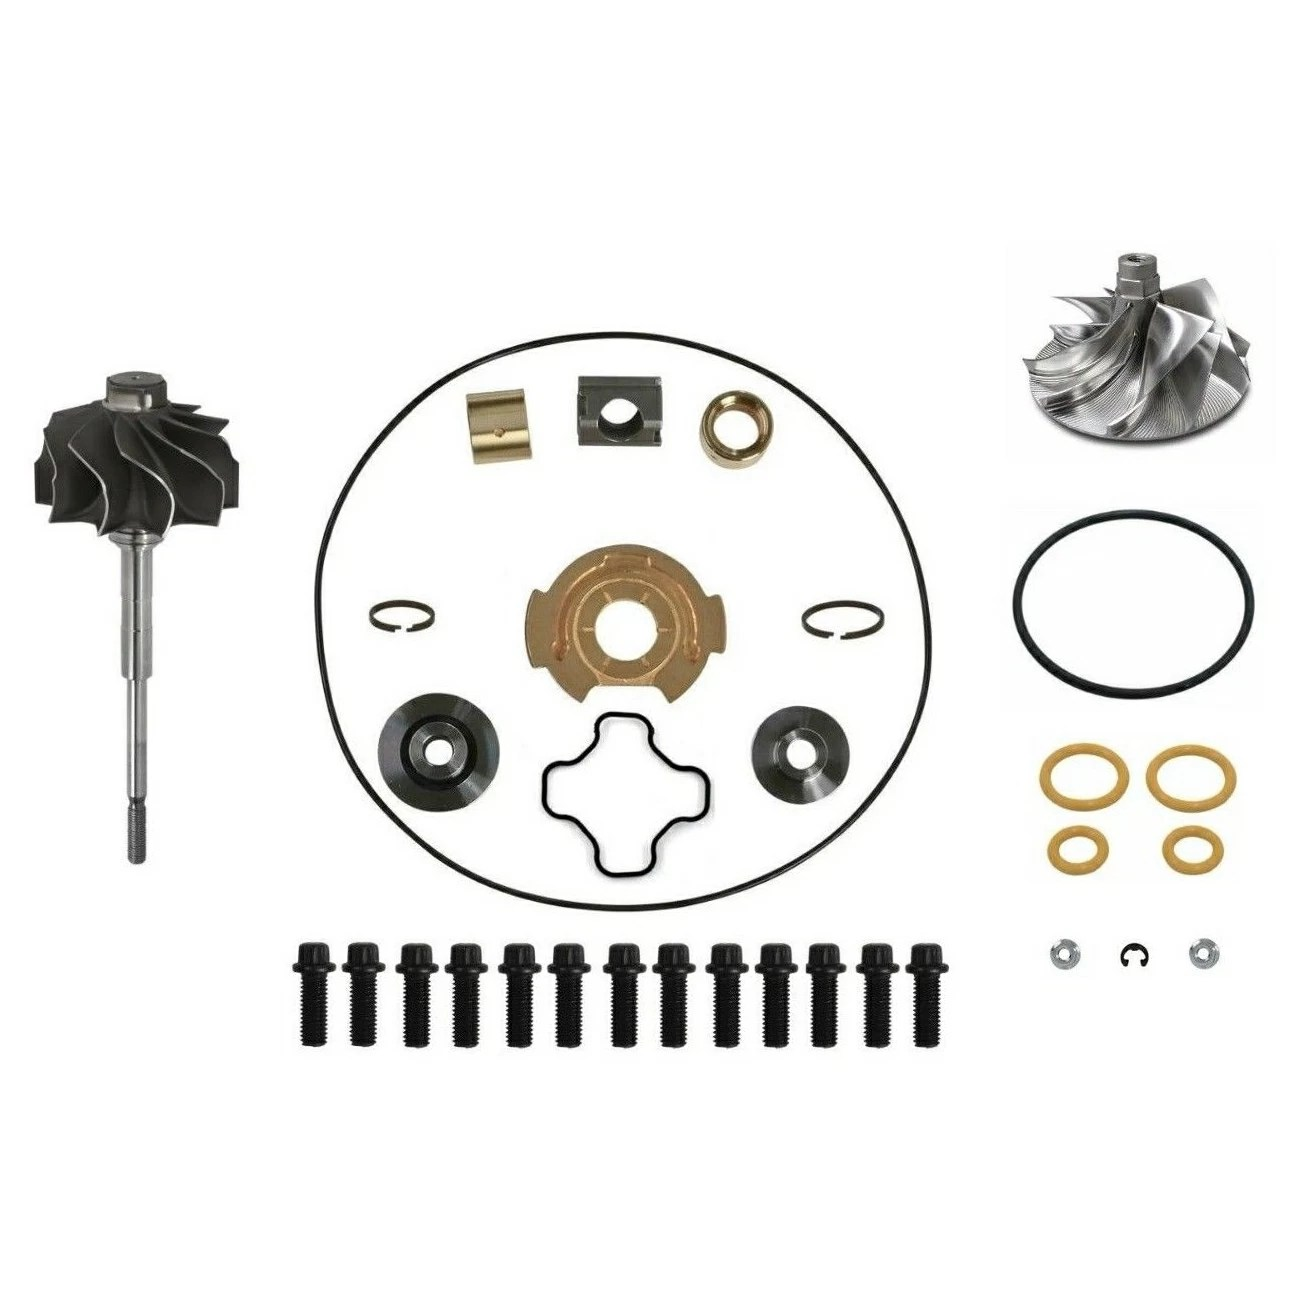 Spoologic Gtp38 Turbo Rebuild Kit Billet Wheel Shaft For